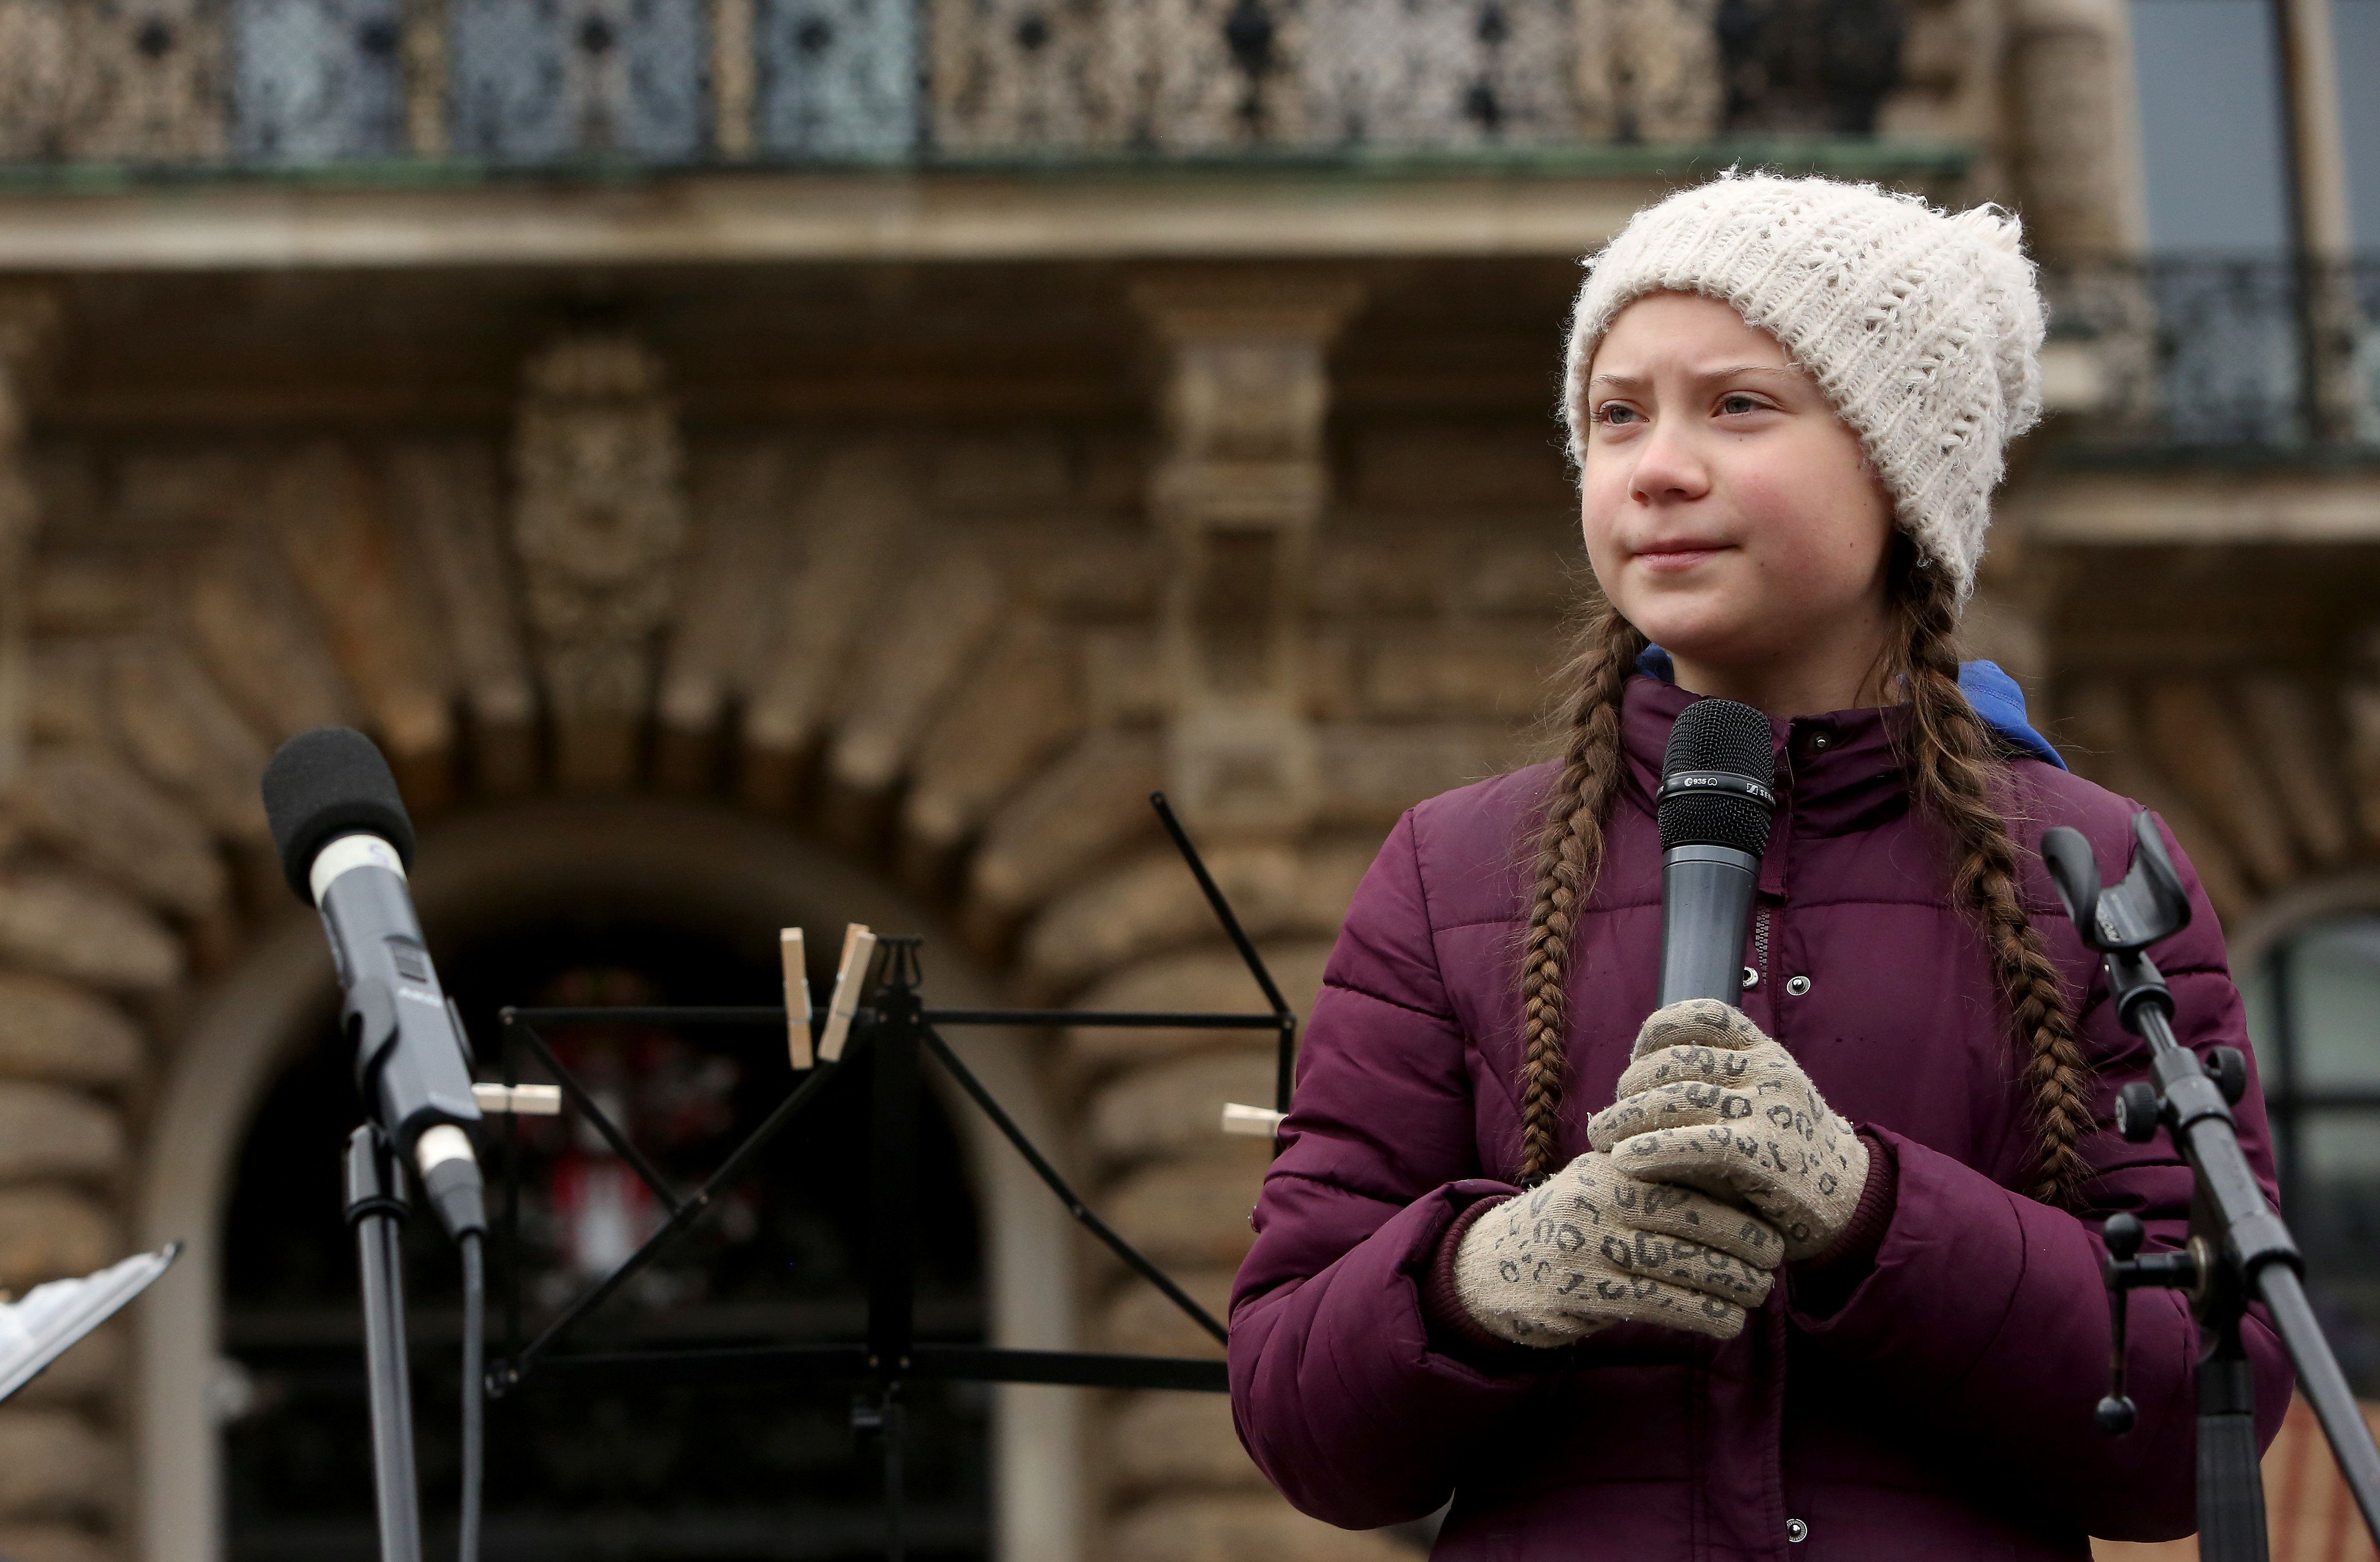 16 Year Old Climate Activist Greta Thunberg Nominated For